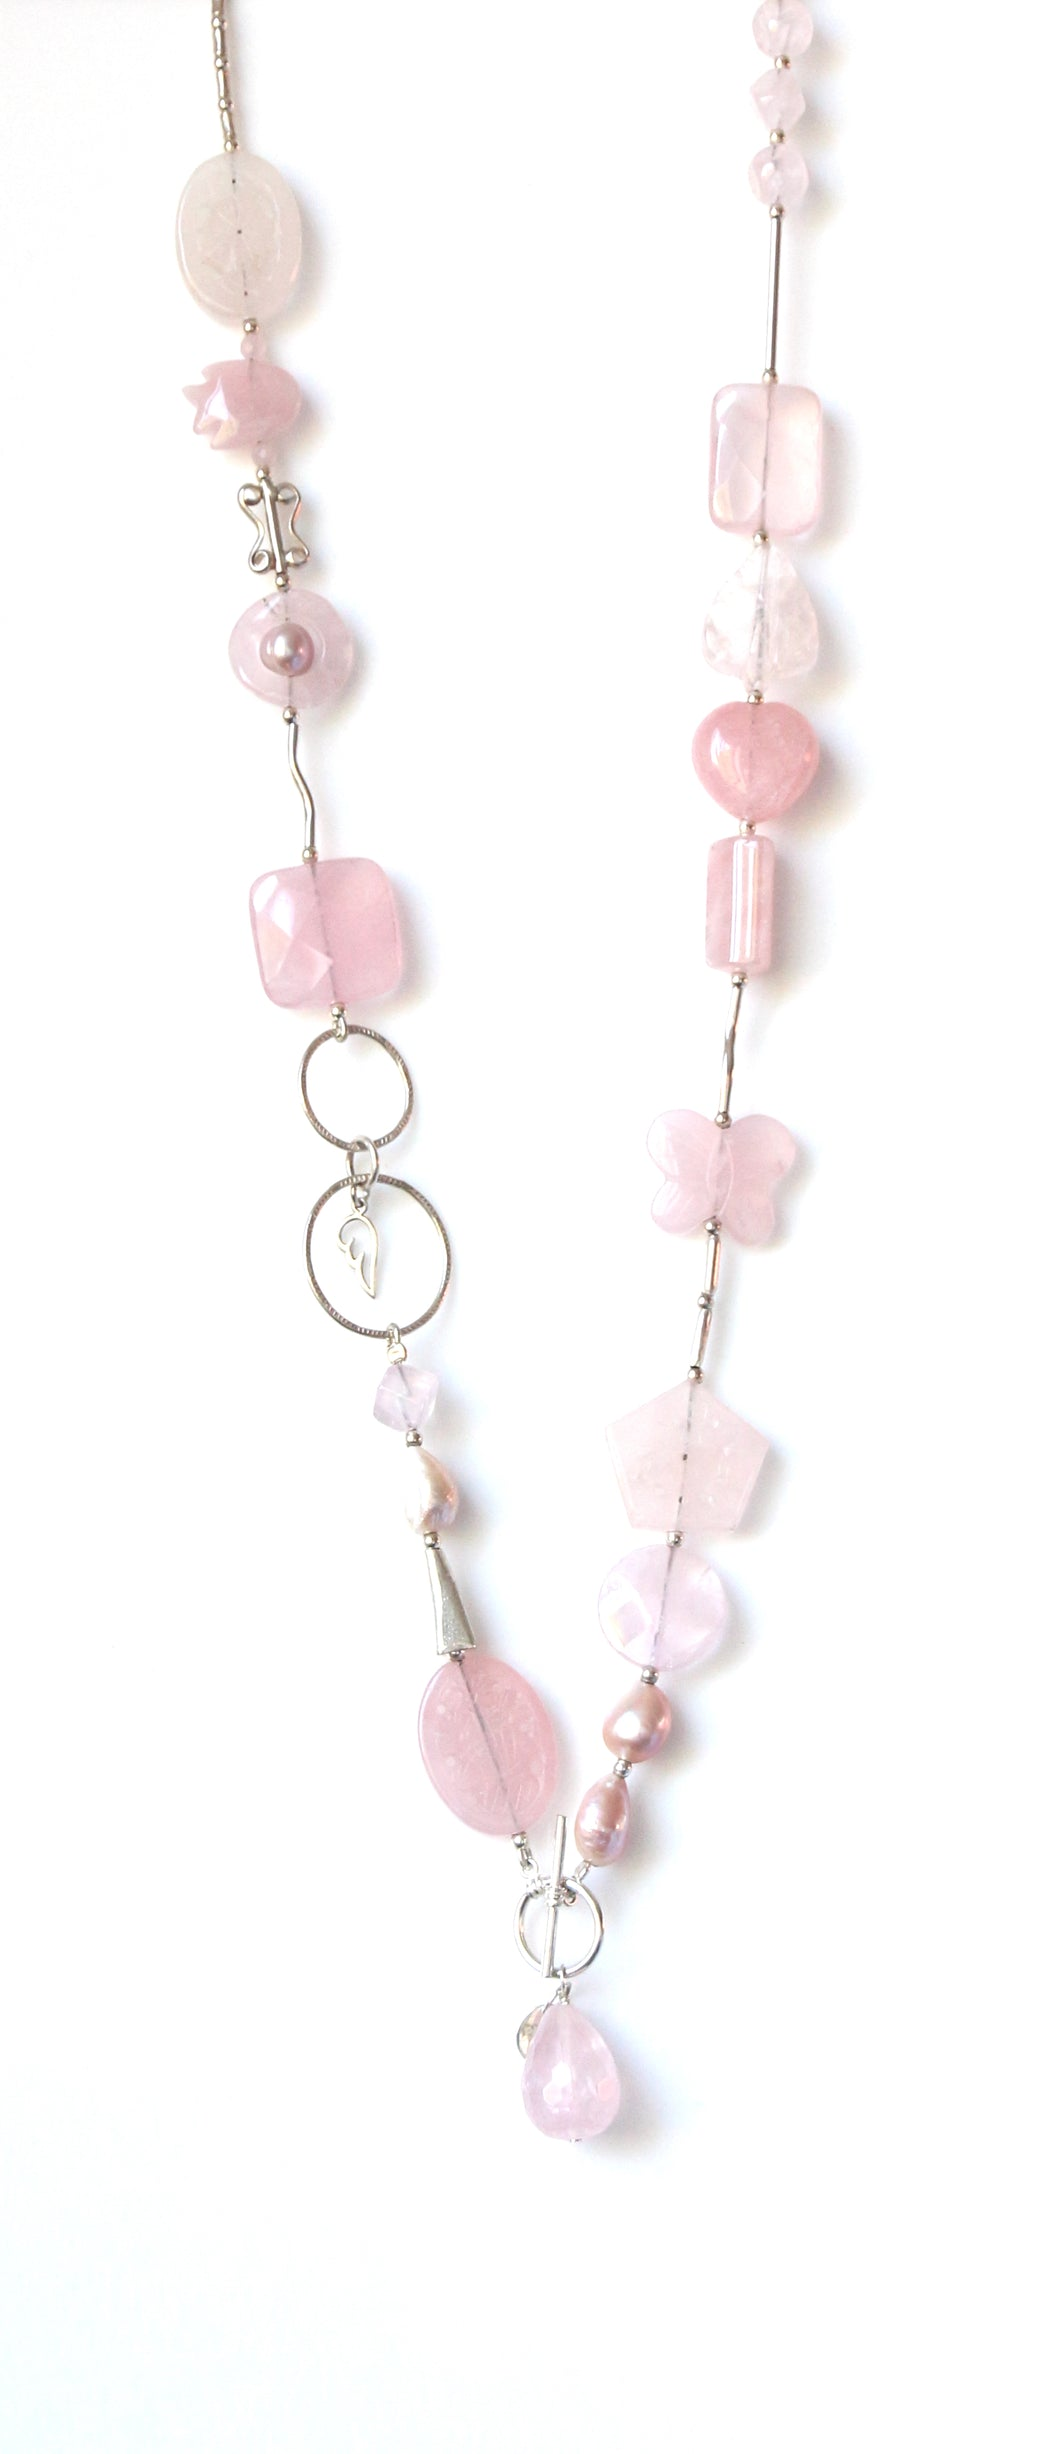 Australian Handmade Pink Fob Necklace with Rose Quartz Pink Pearls and Sterling Silver